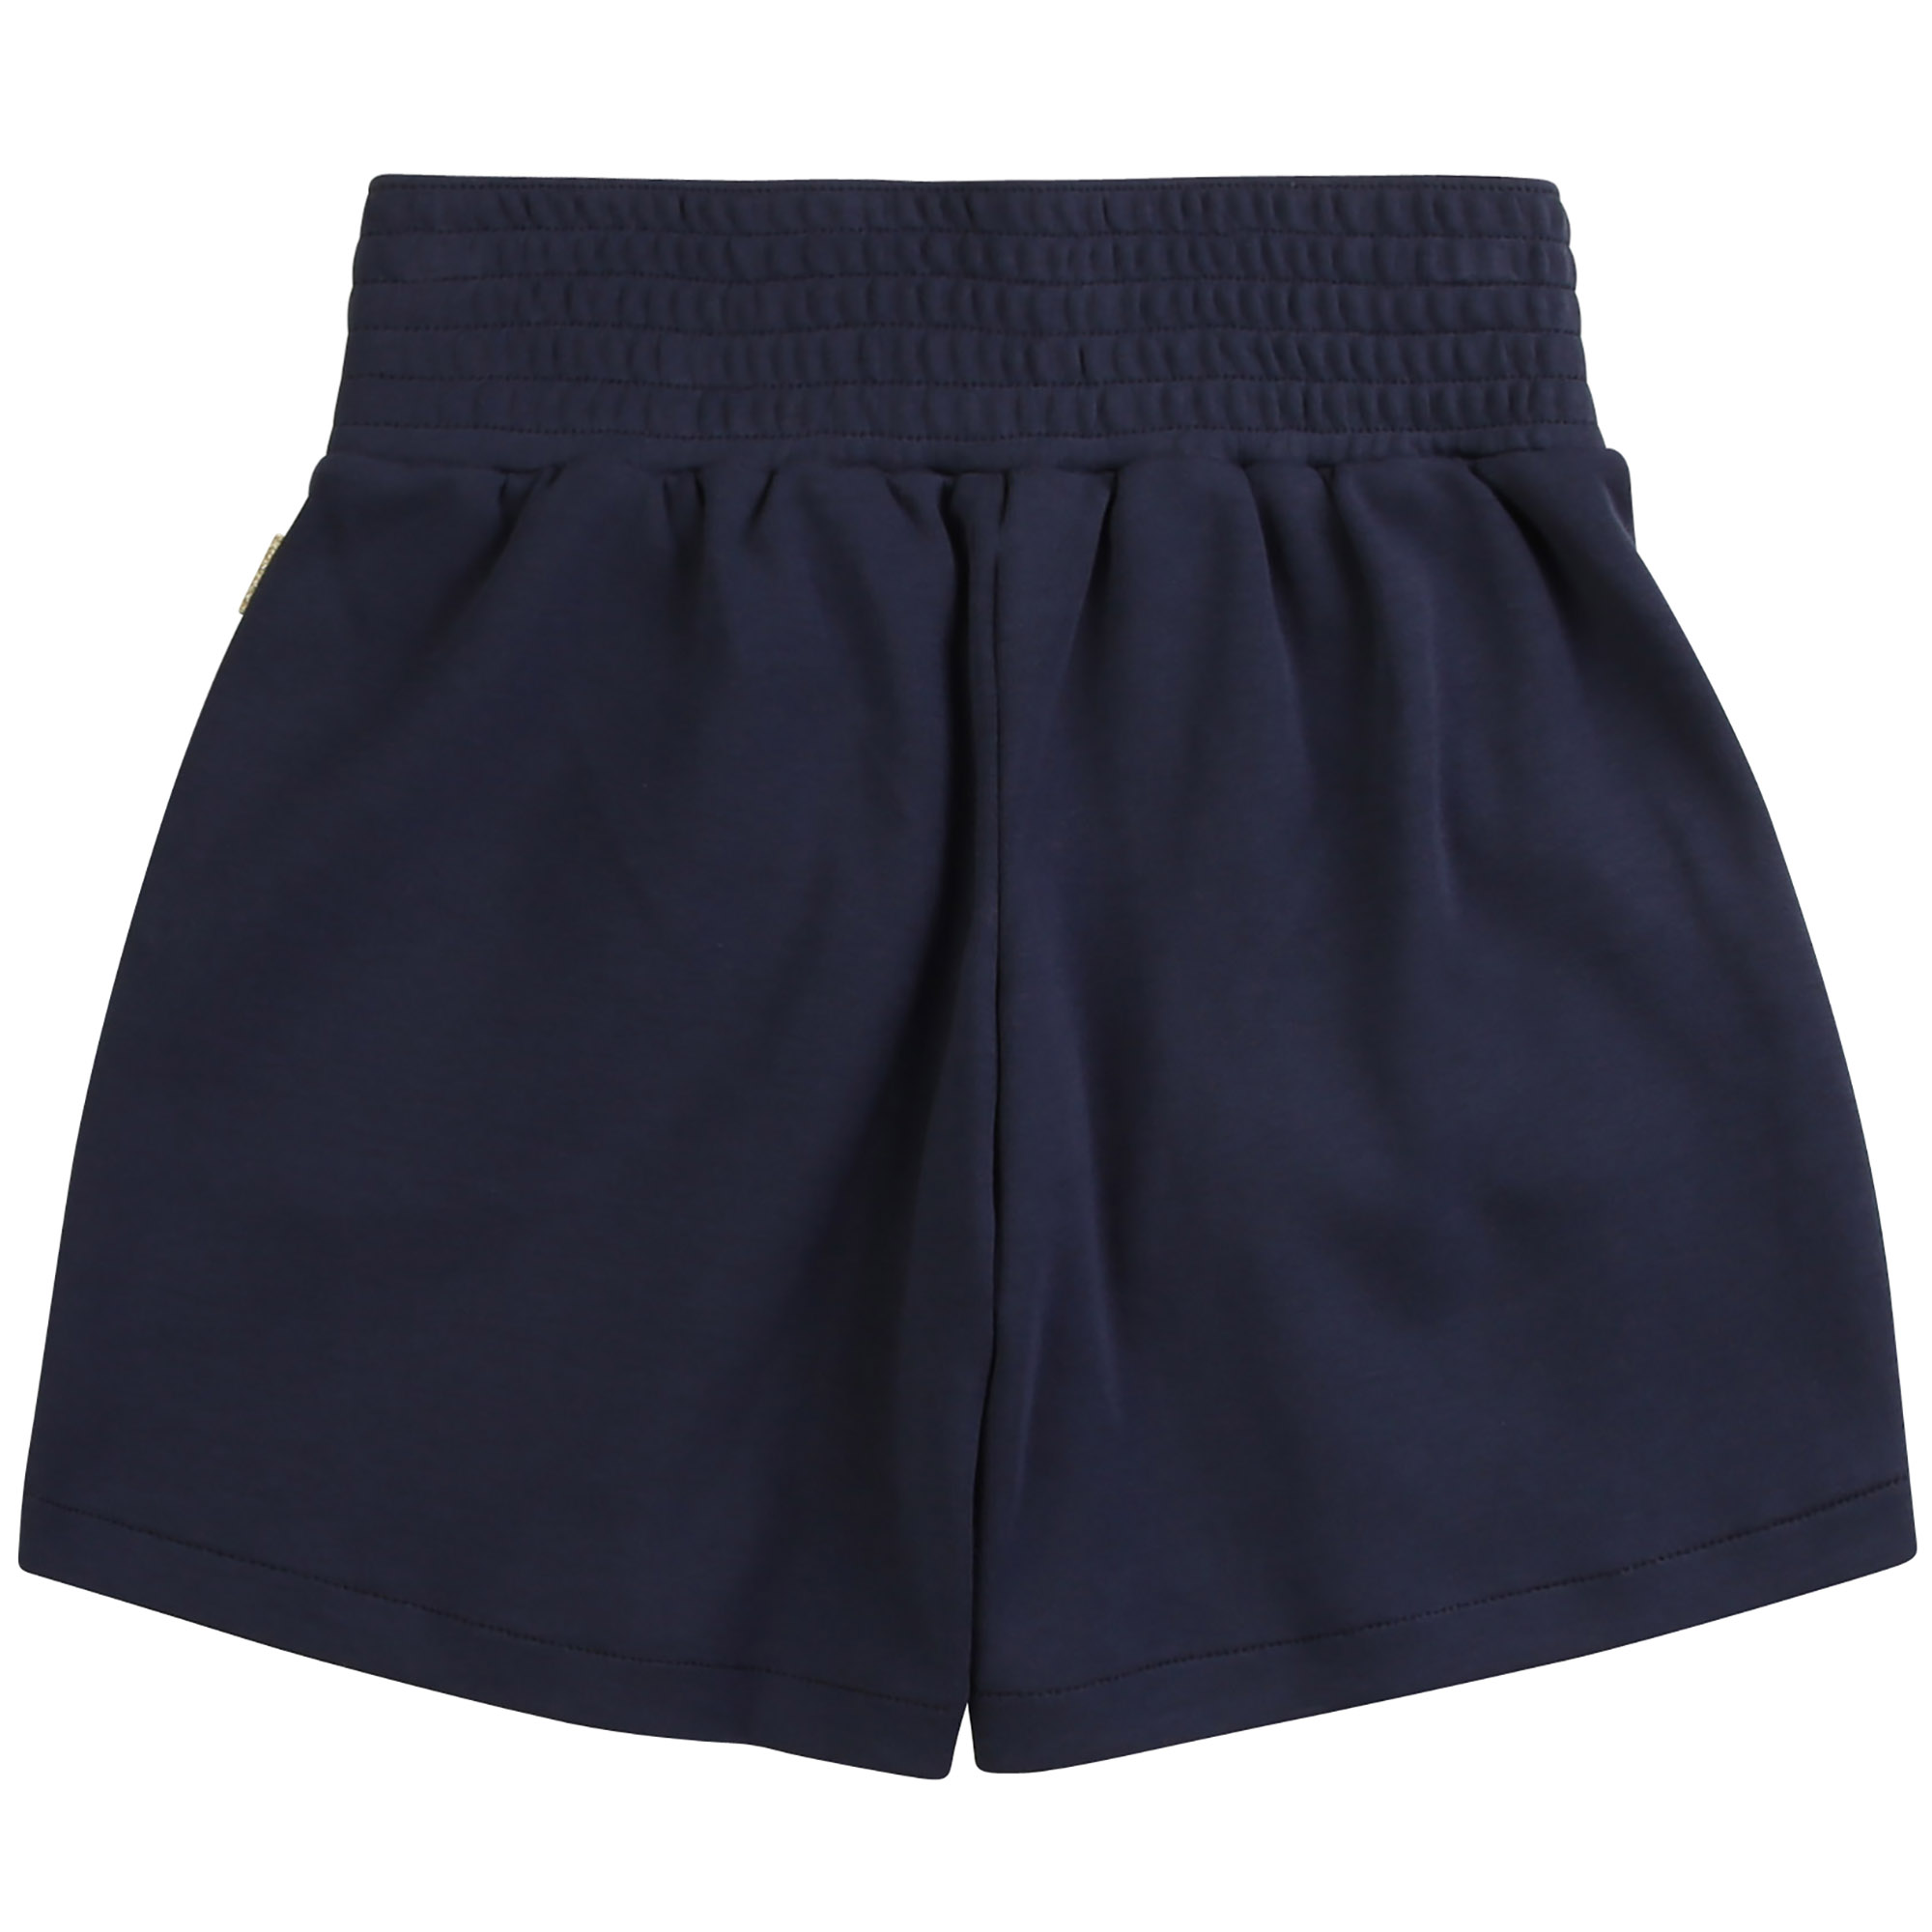 High-waisted cotton shorts THE MARC JACOBS for GIRL